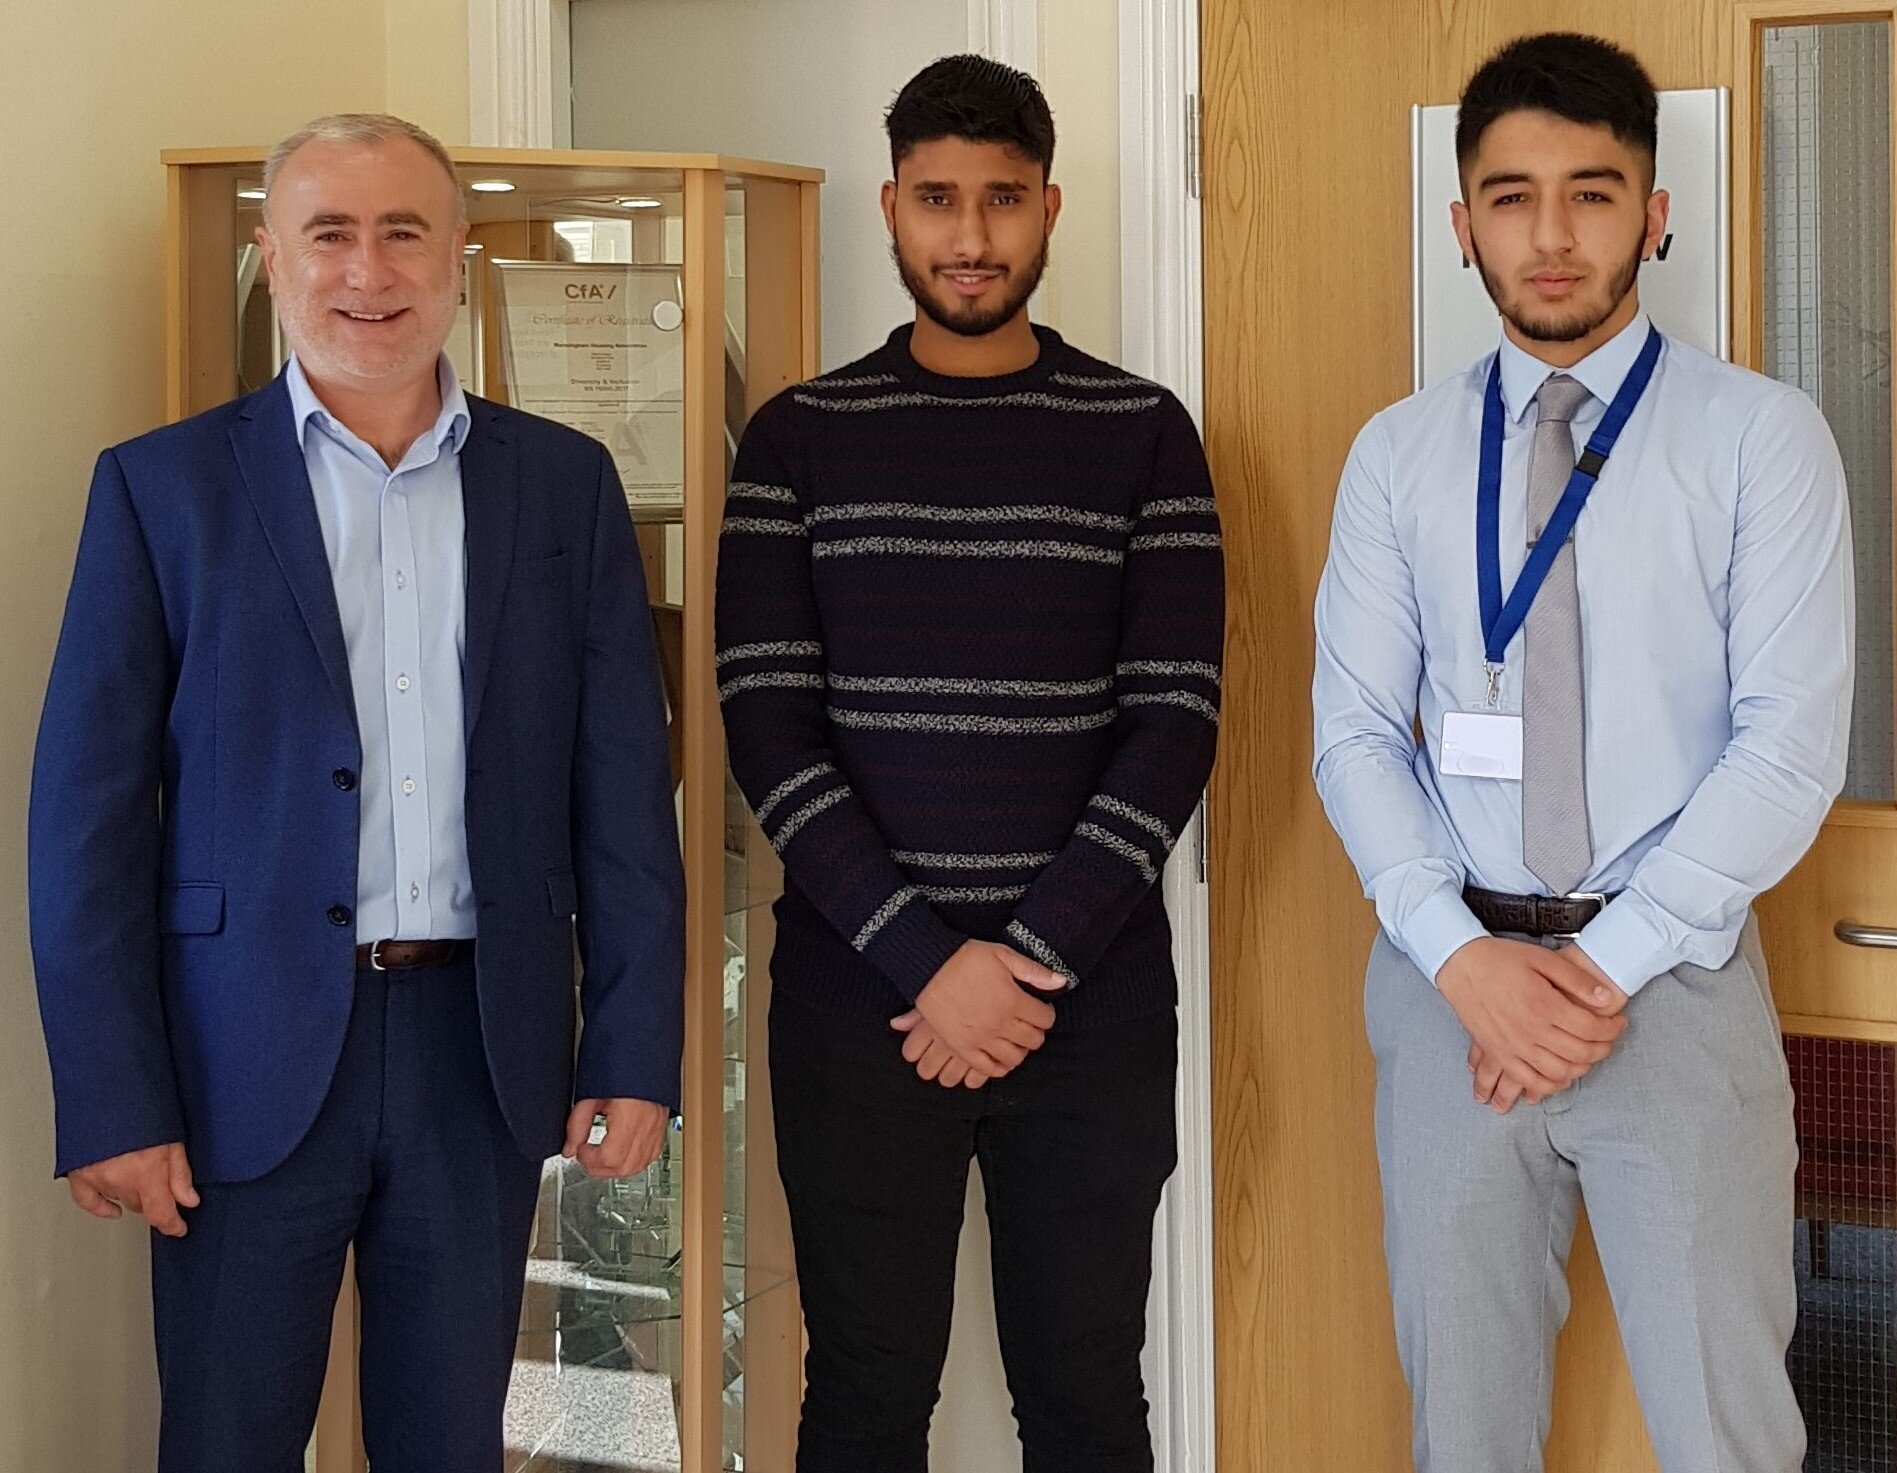 L to R: Lee Bloomfield, Manningham Housing Association Chief Executive, with apprentices Avtar Dhesi and Aanish Rehman